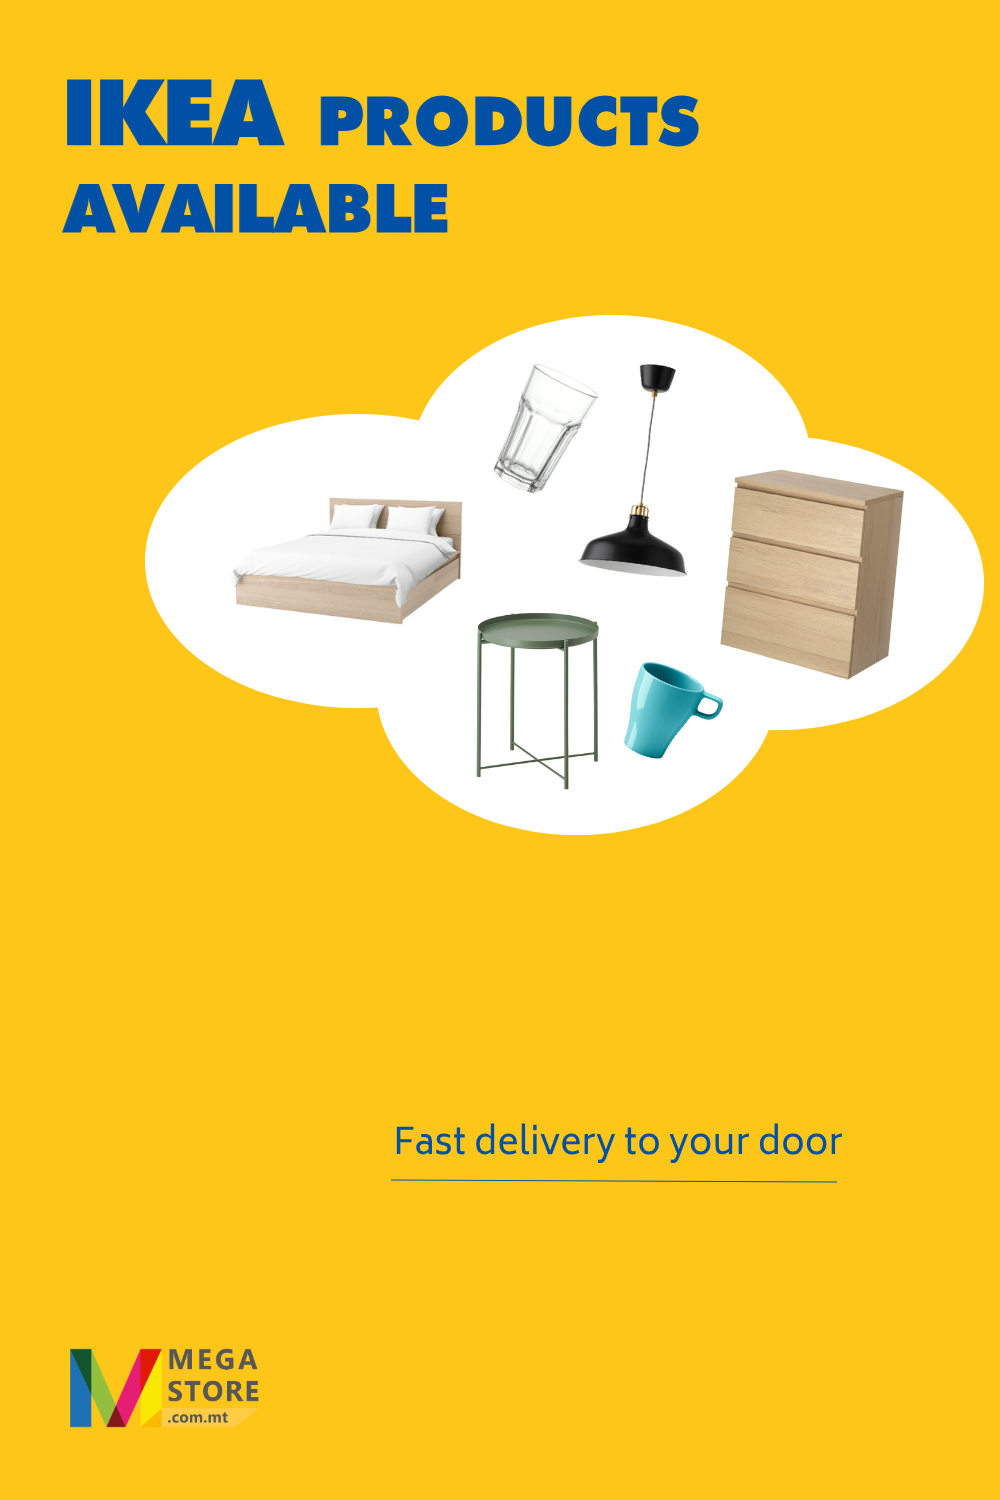 Halloween In Malta 2020 Wide variety of IKEA products delivered right to your door on